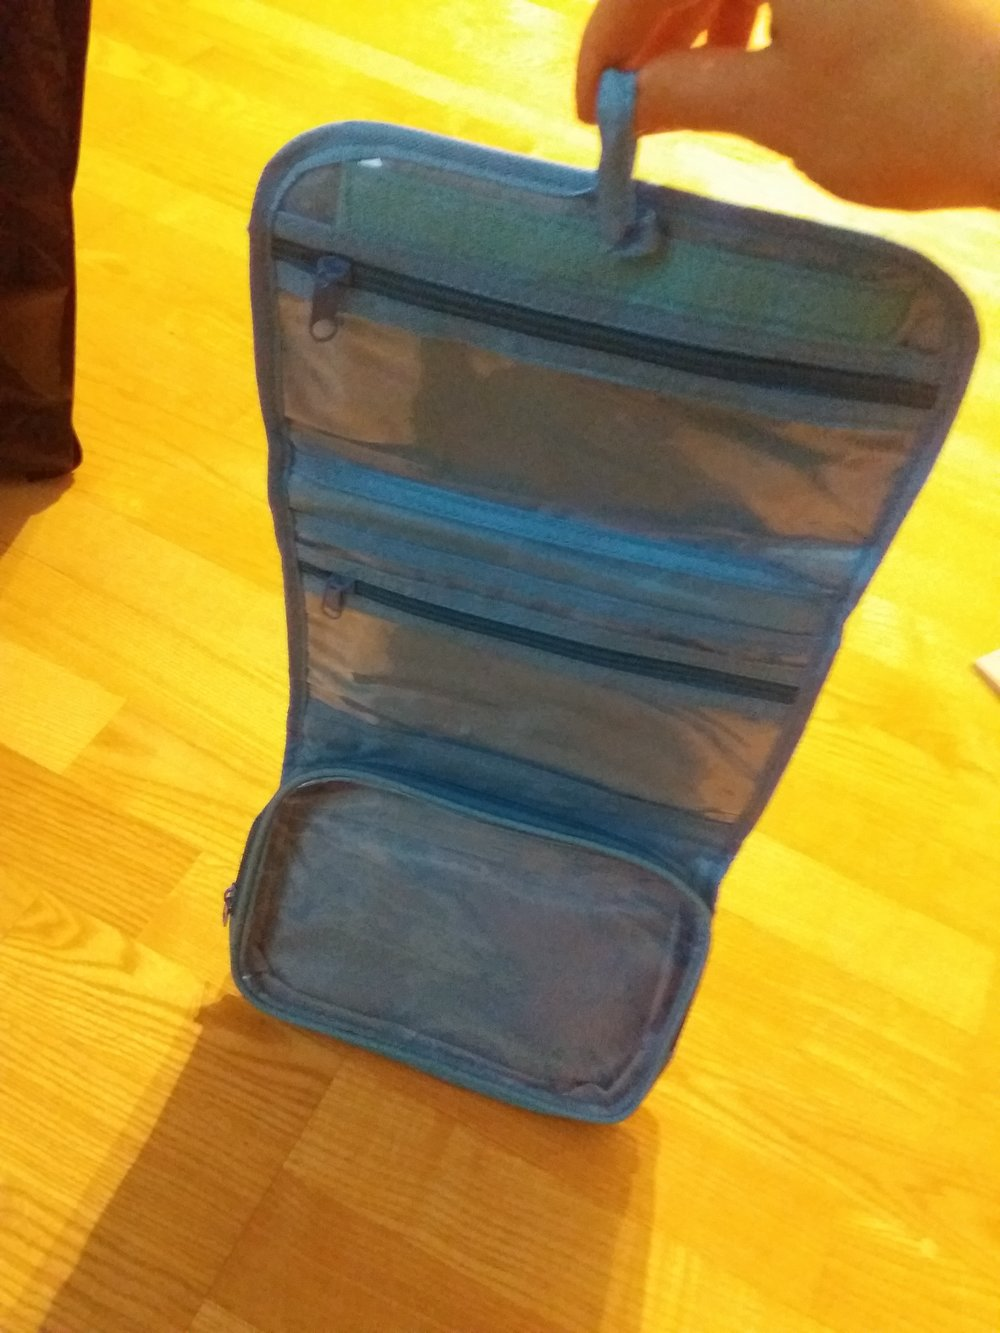 super handy foldable toilet bag, which you can open up like this and put it hang on rack or something. it's great in hostels!